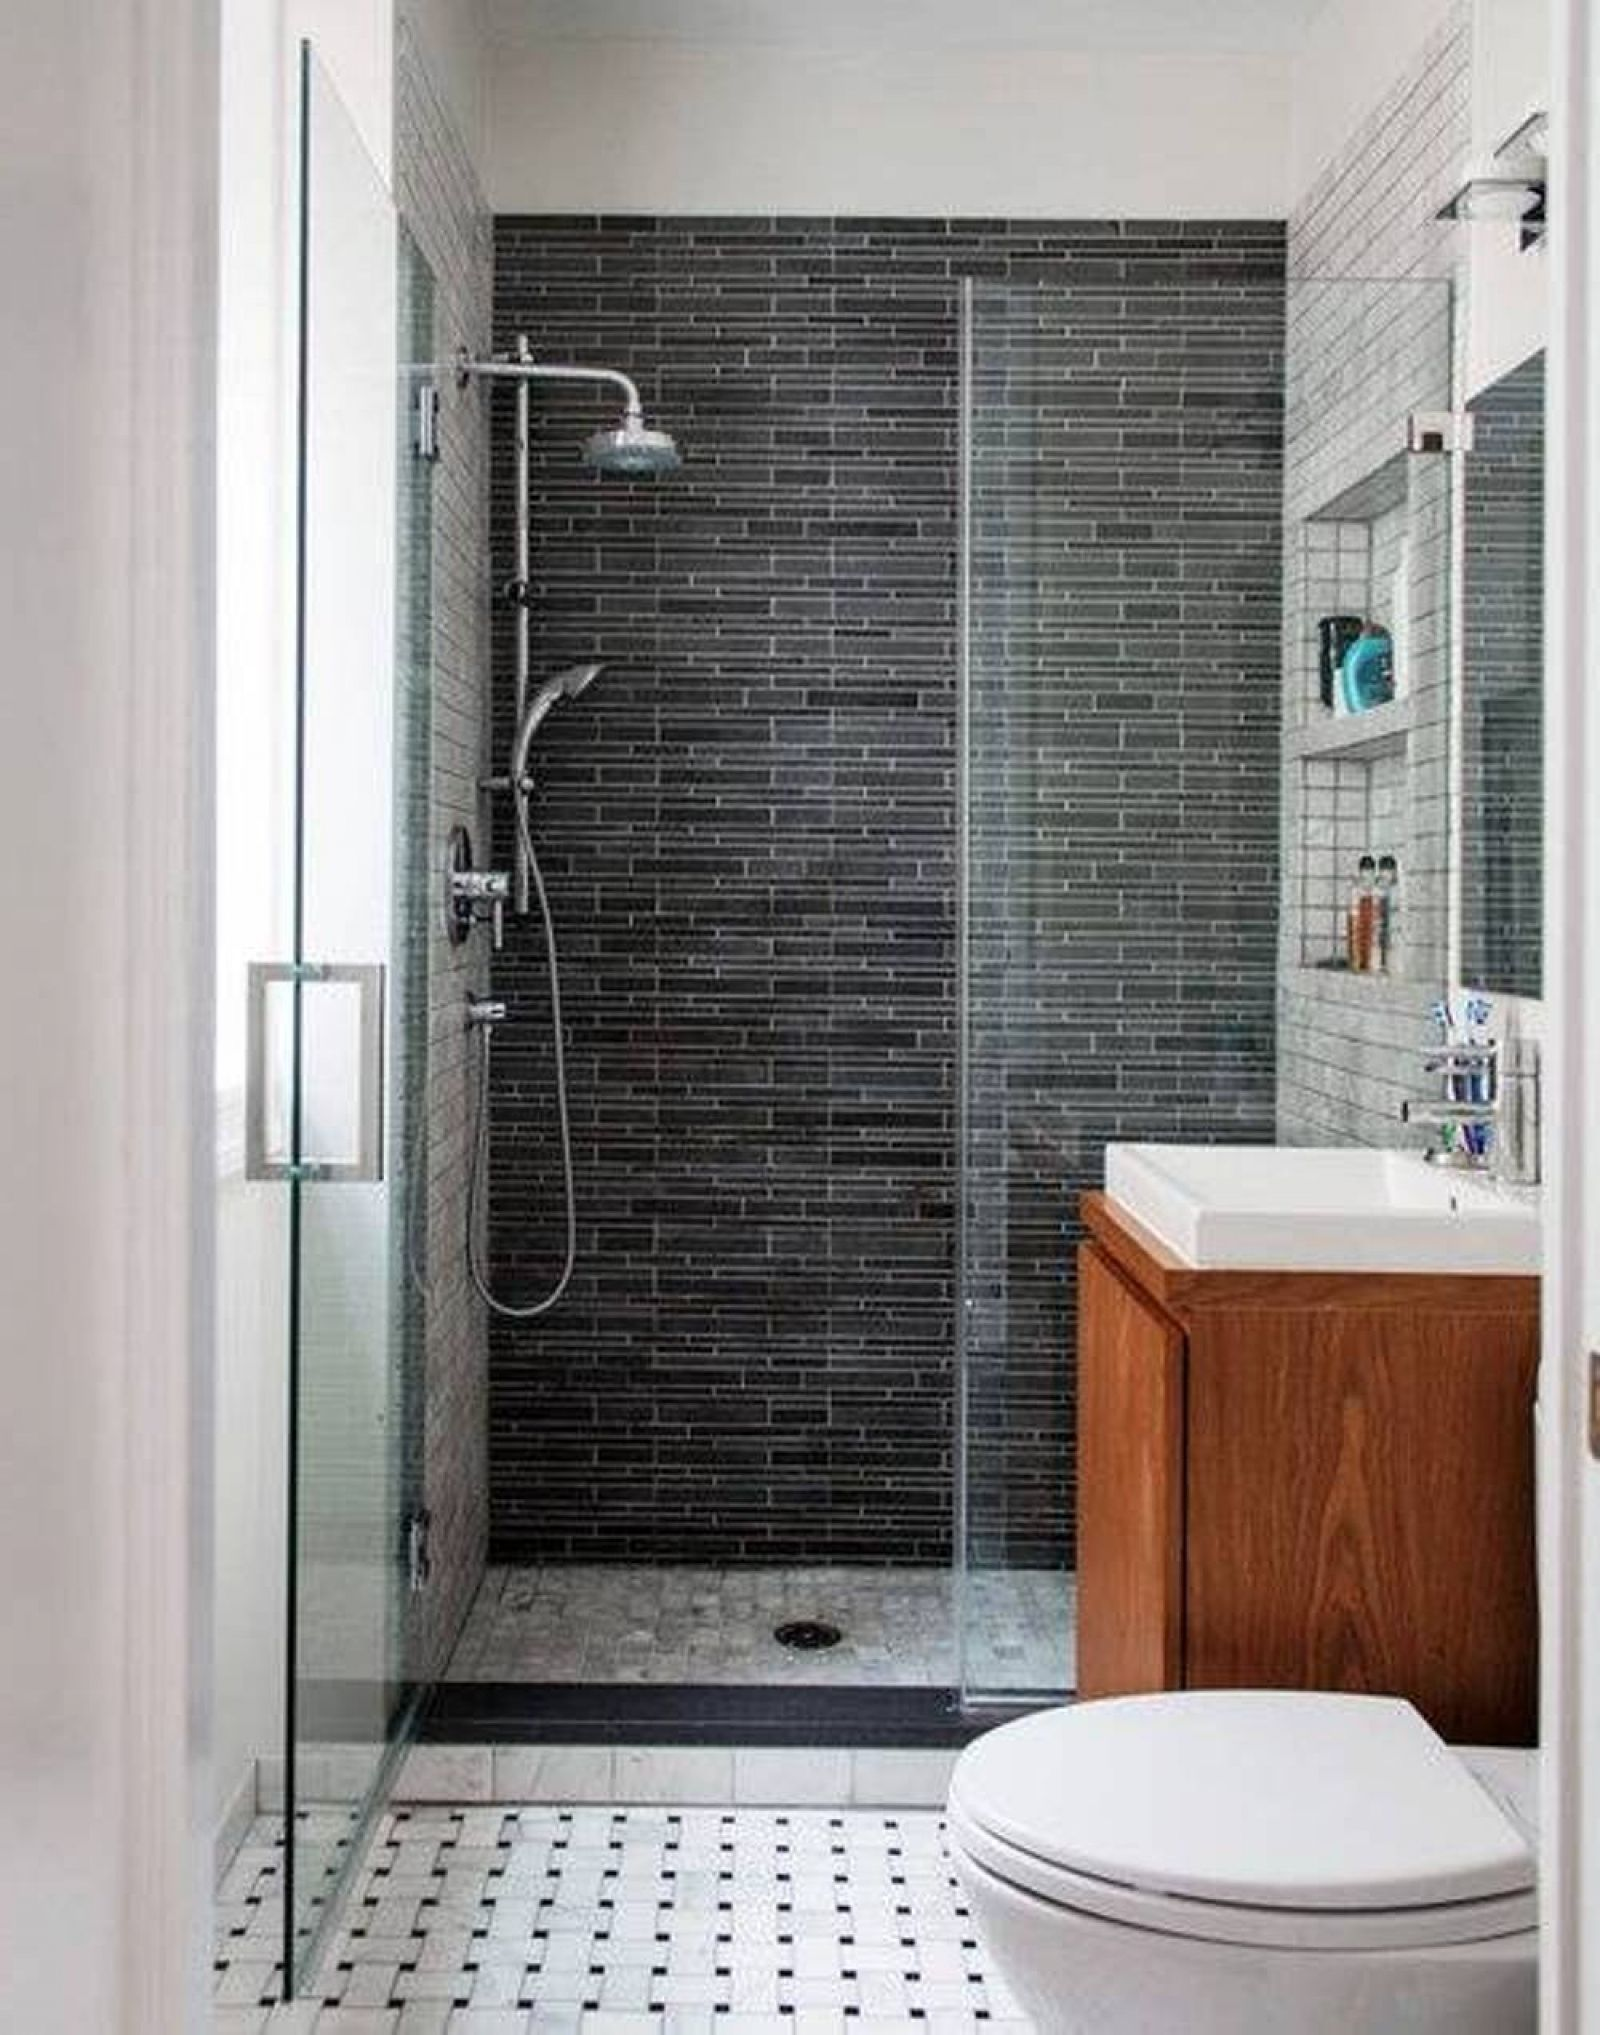 Small Bathroom Ideas On A Budget cheap bathroom remodel ideas for small bathrooms | bath remodel